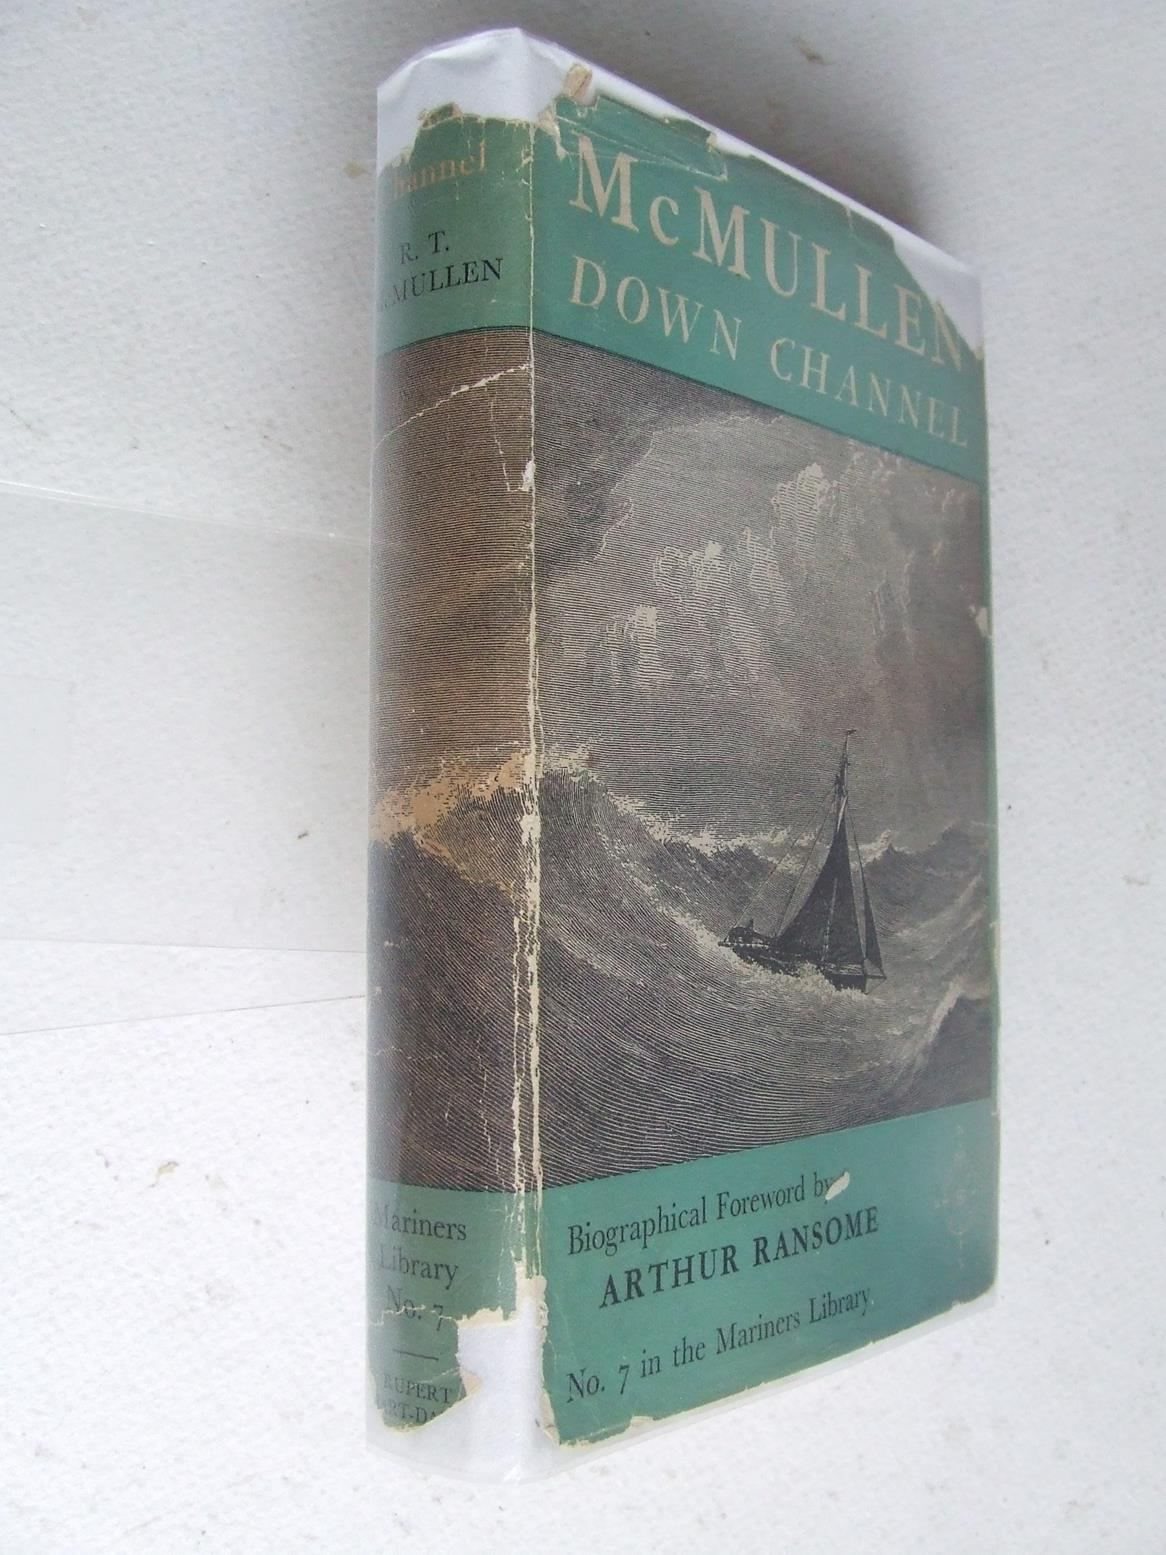 Down Channel. [Mariners Library no.7]